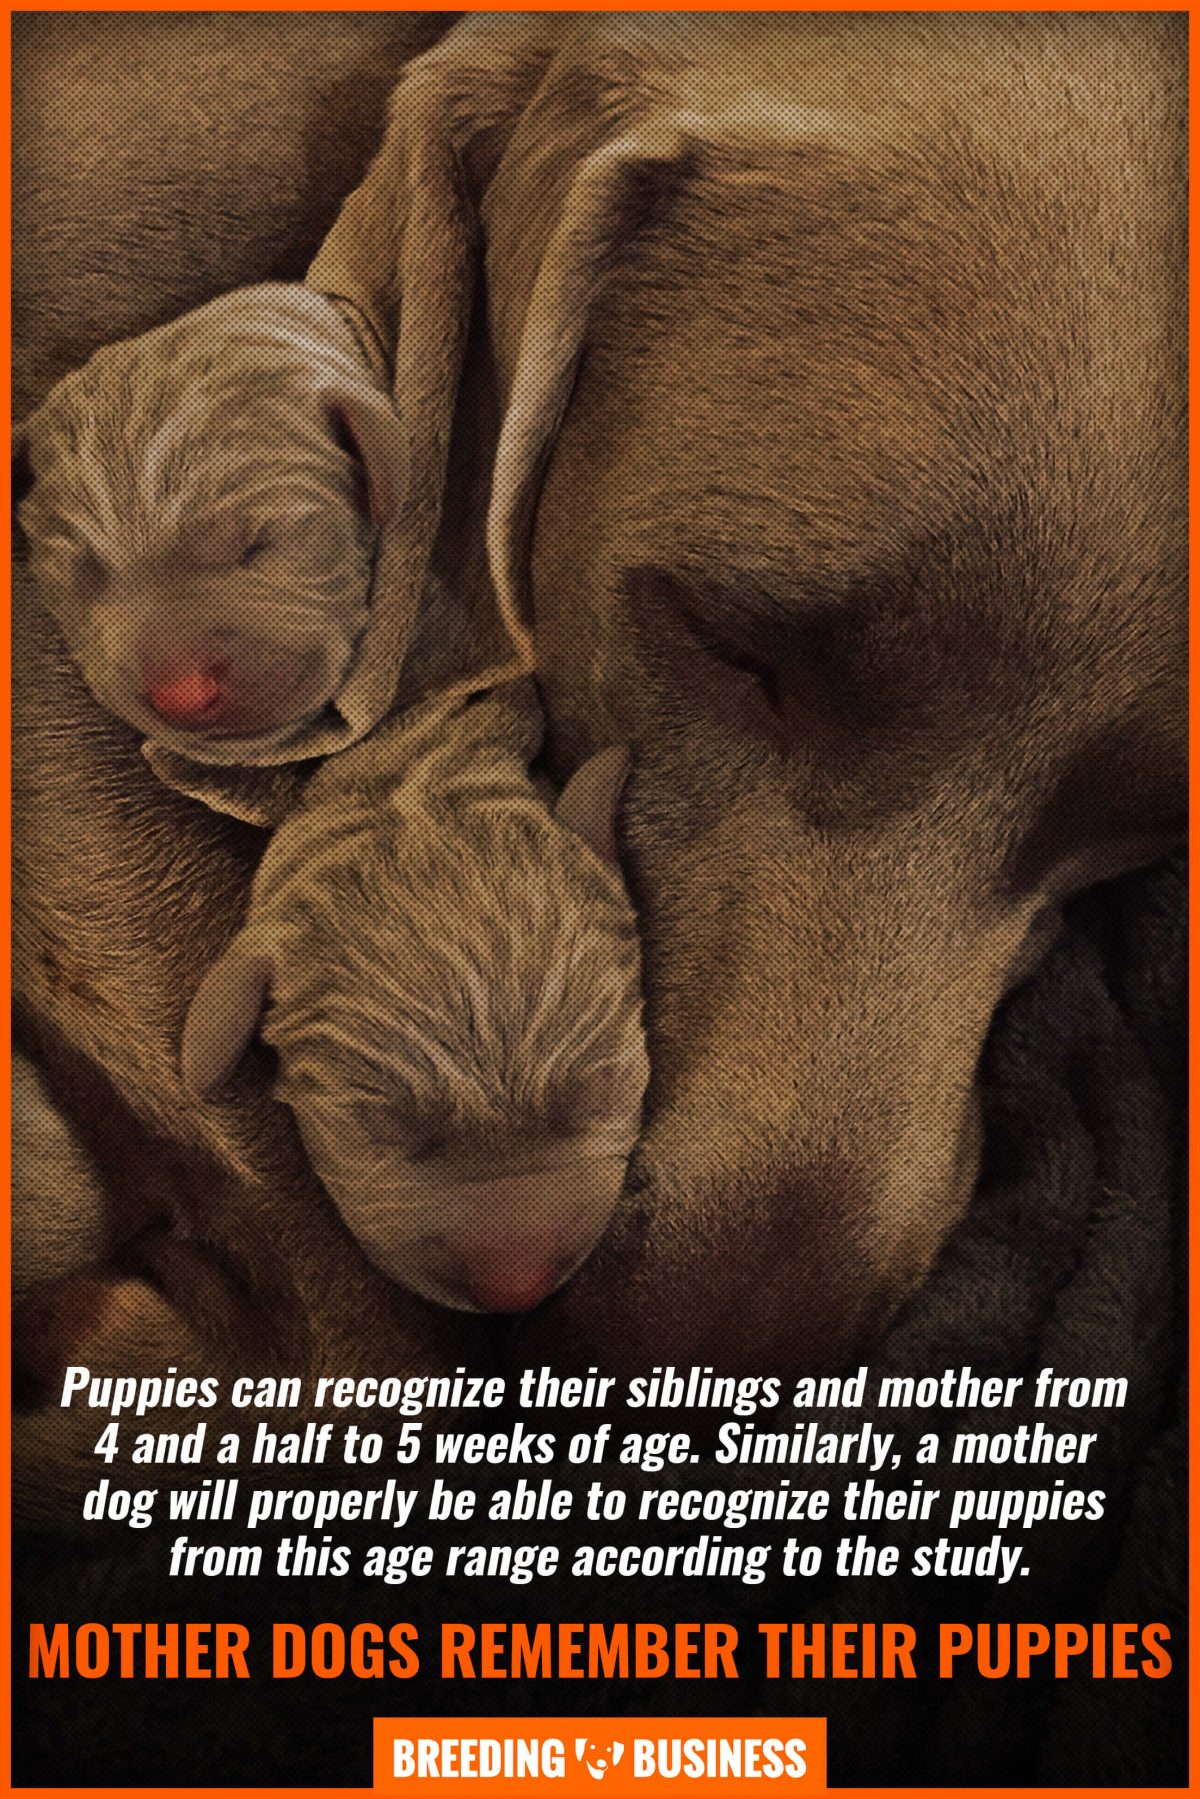 mother dogs remember their puppies